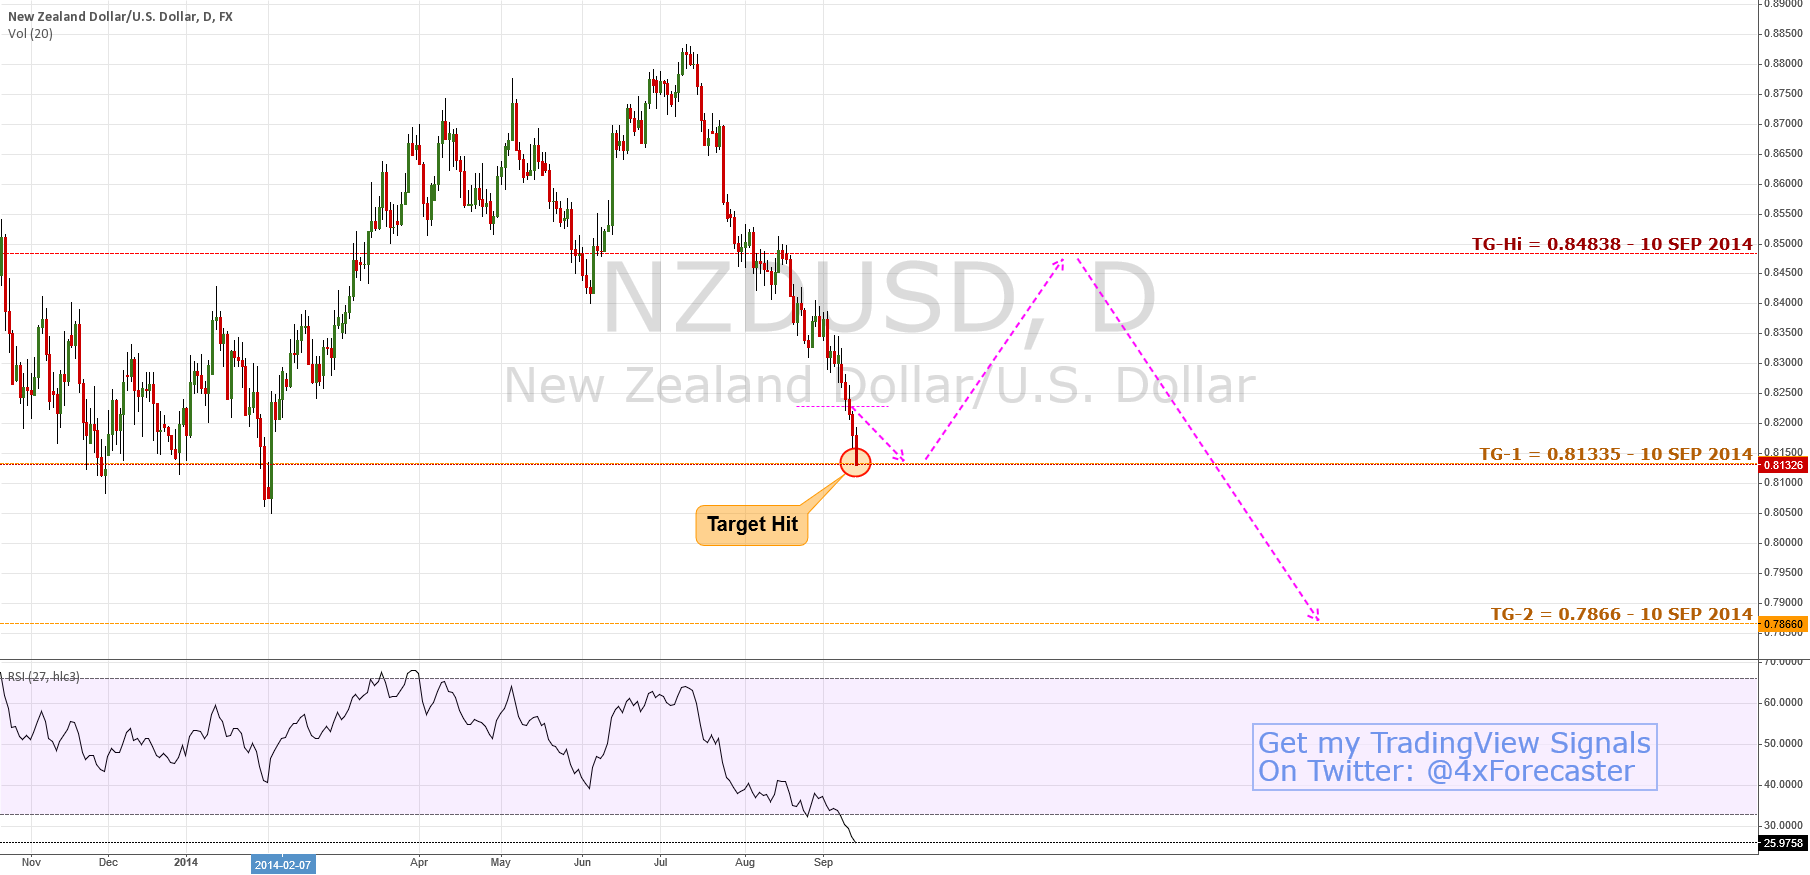 $NZD Hit Target; Next: Sees 0.84838 Reaction   #RBNX $USD #forex